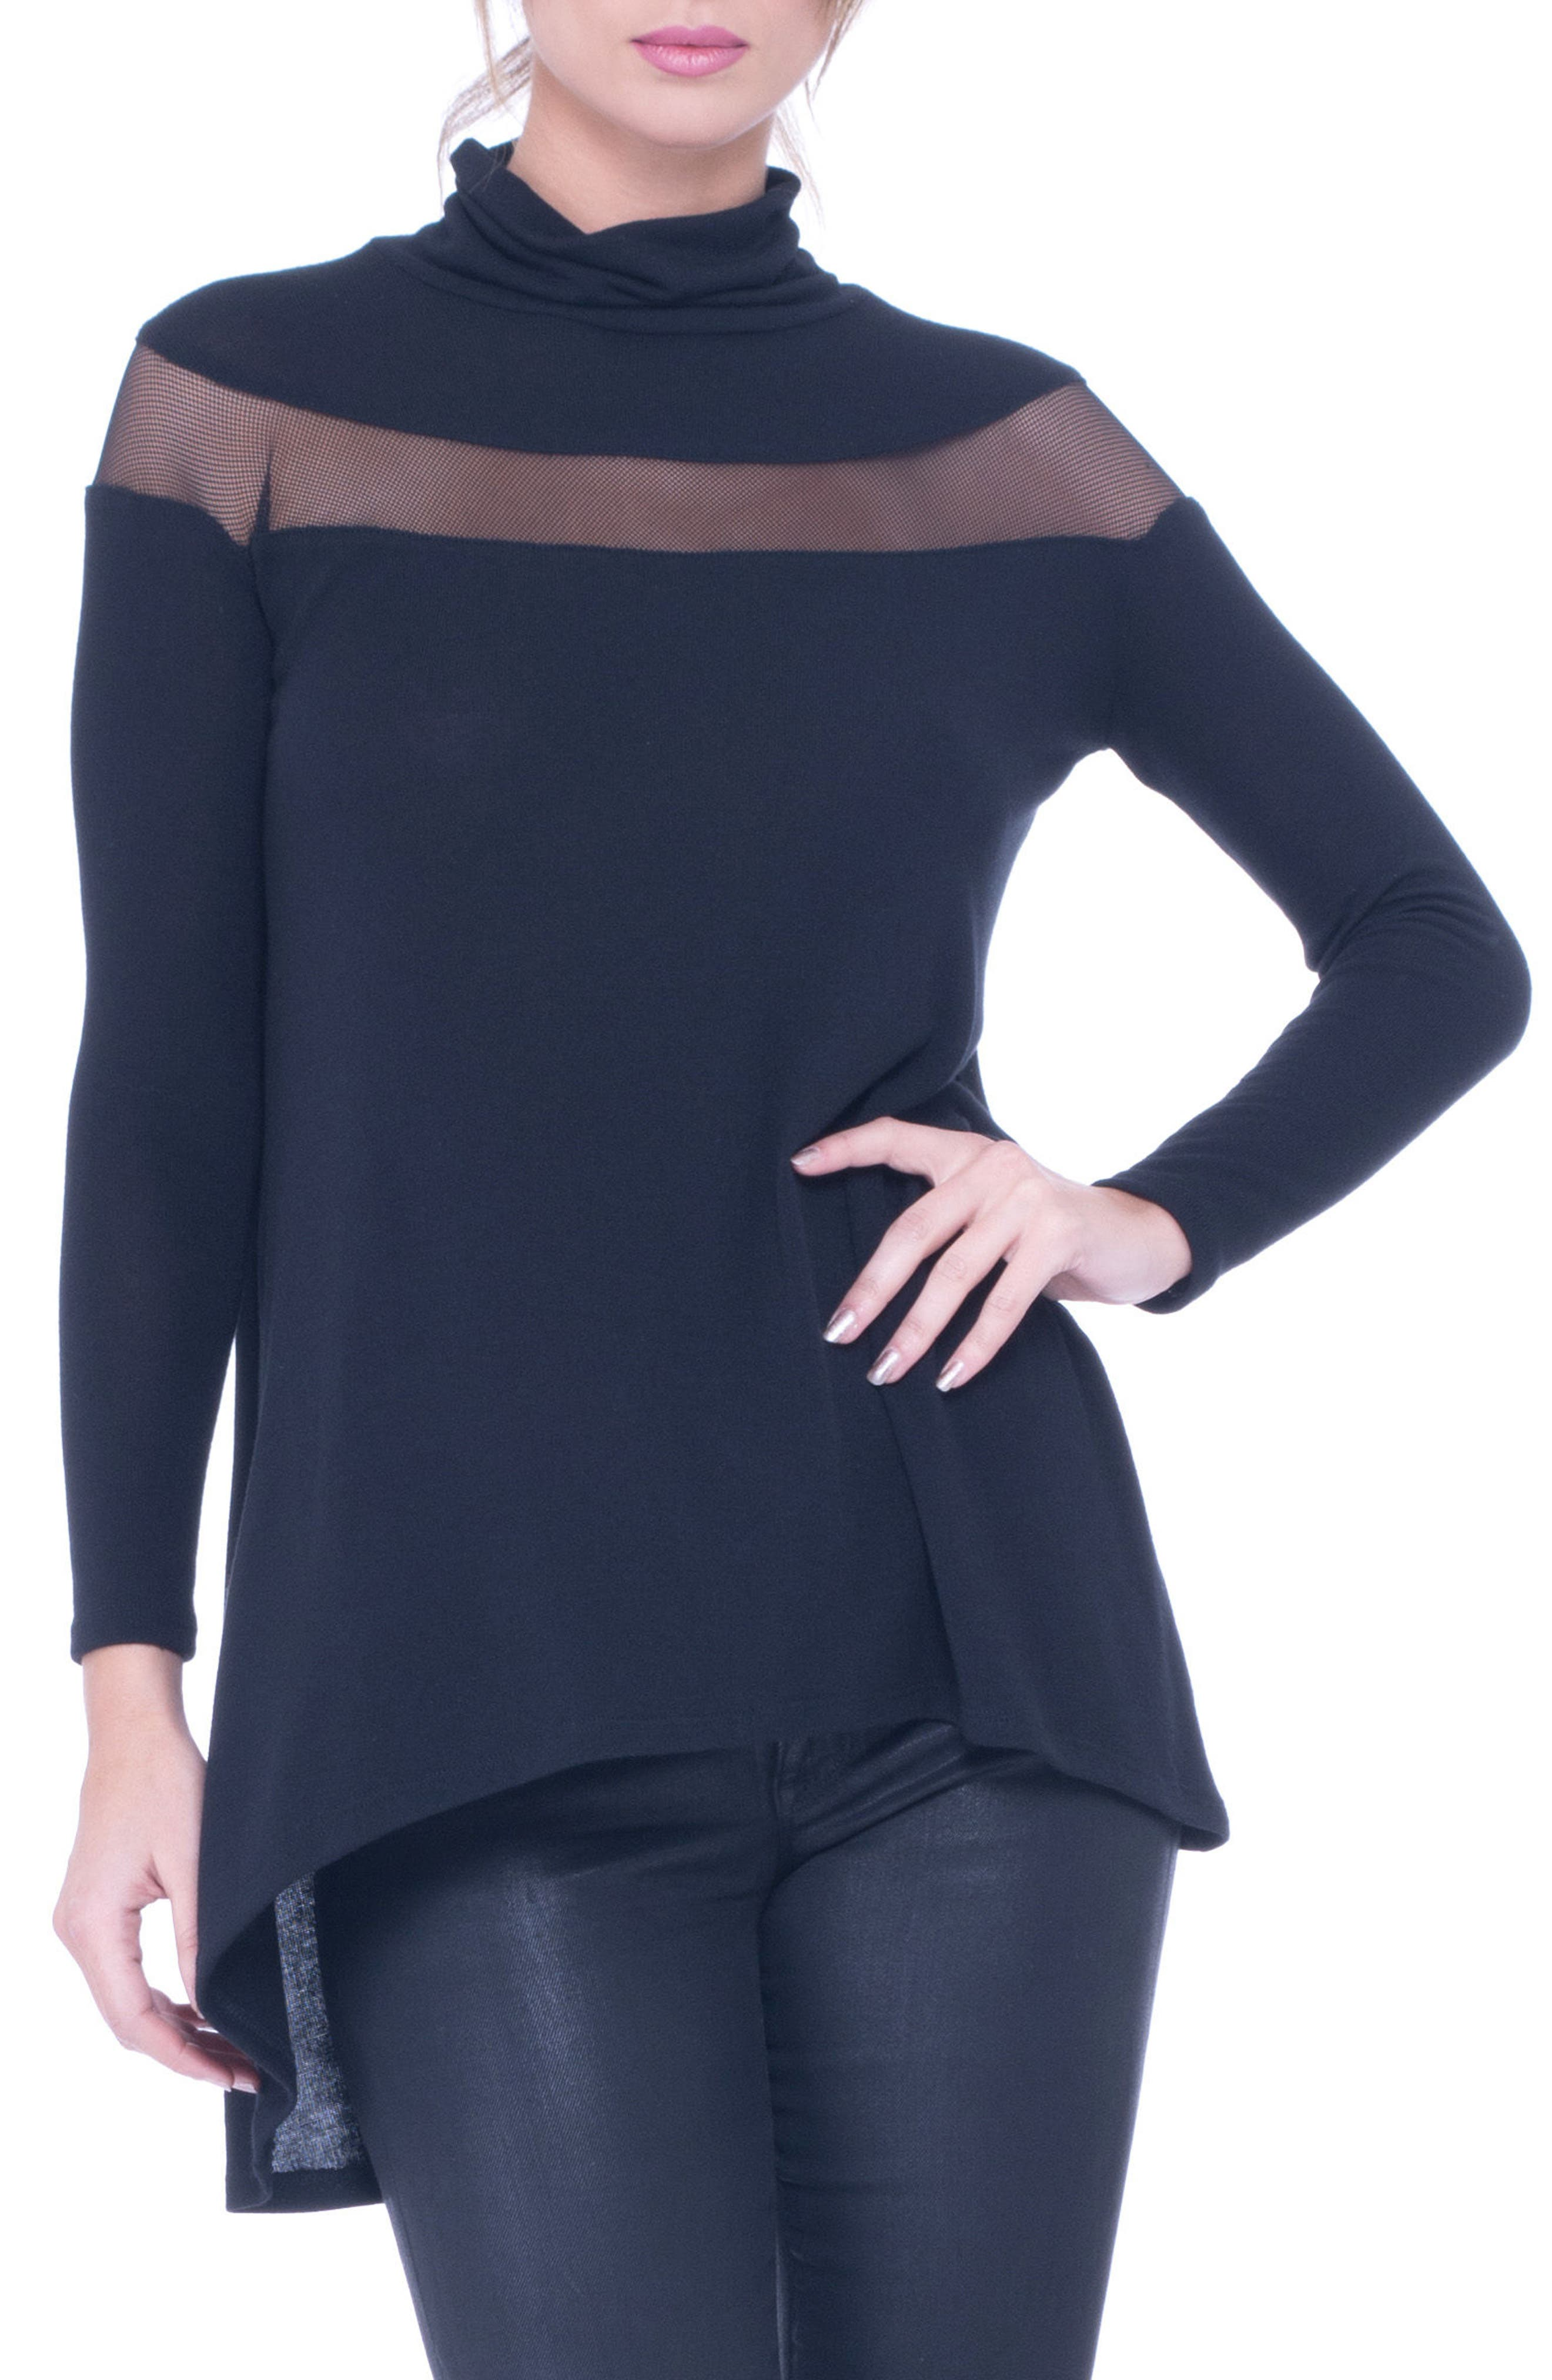 Main Image - Olian Mesh Trim High/Low Maternity Top